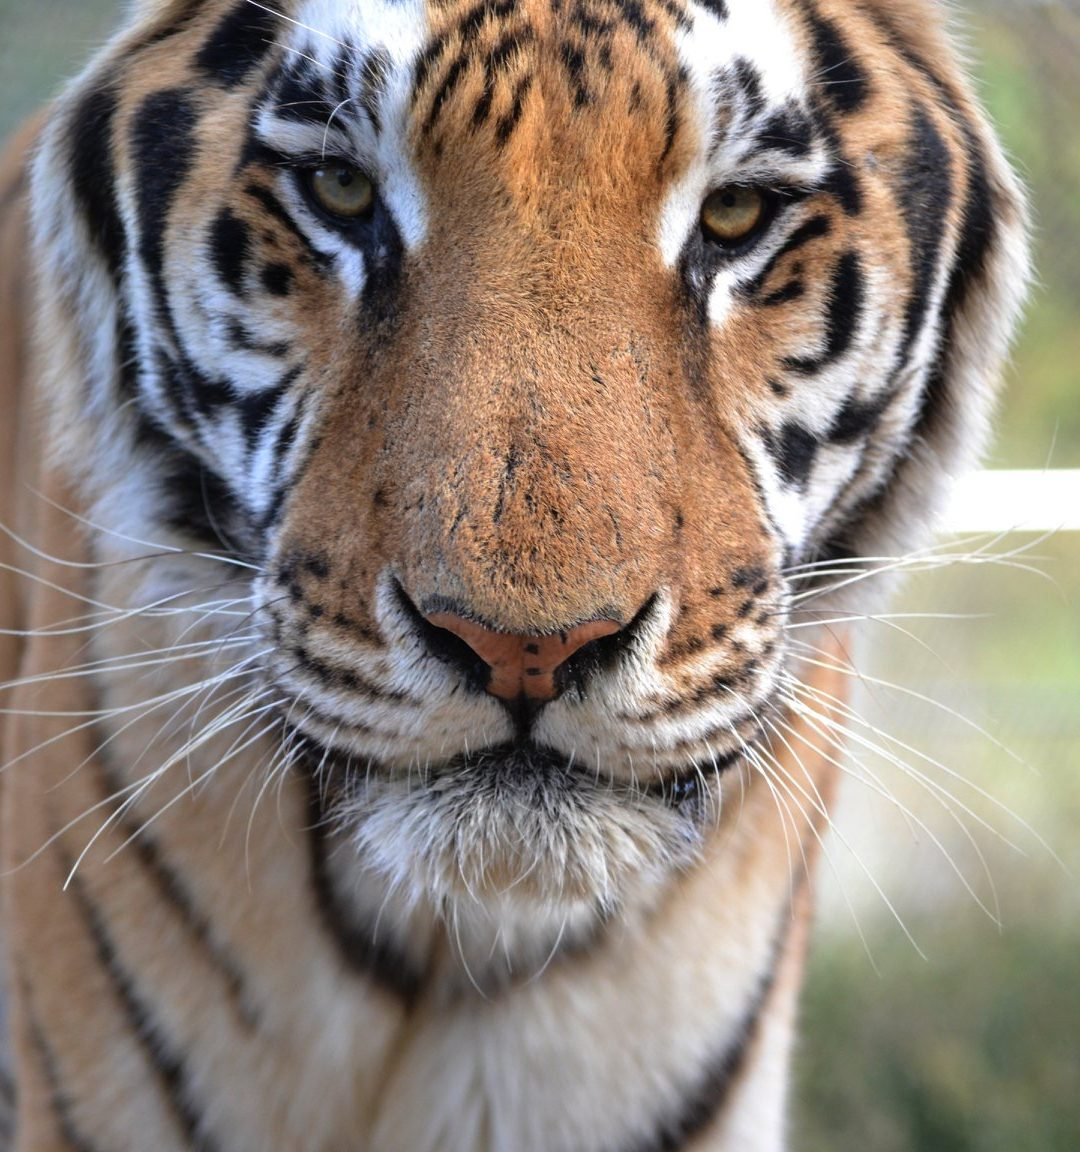 Ten Things You Need to Know about Captive Big Cats